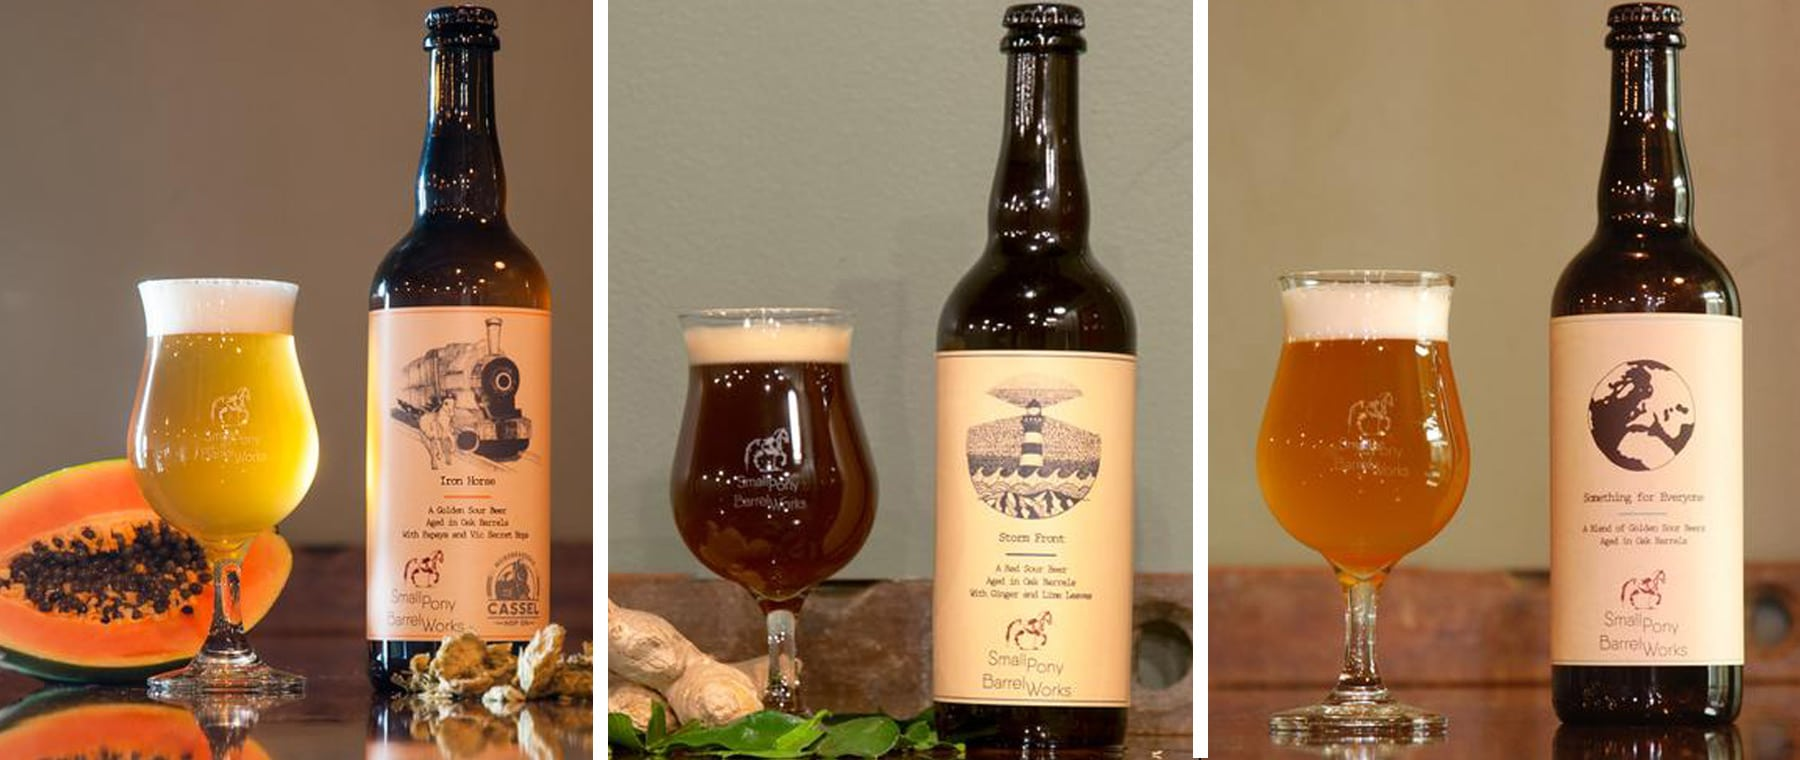 """Floral, earthy … even horse blanket"" — Kanata brewer talks about sour beer"